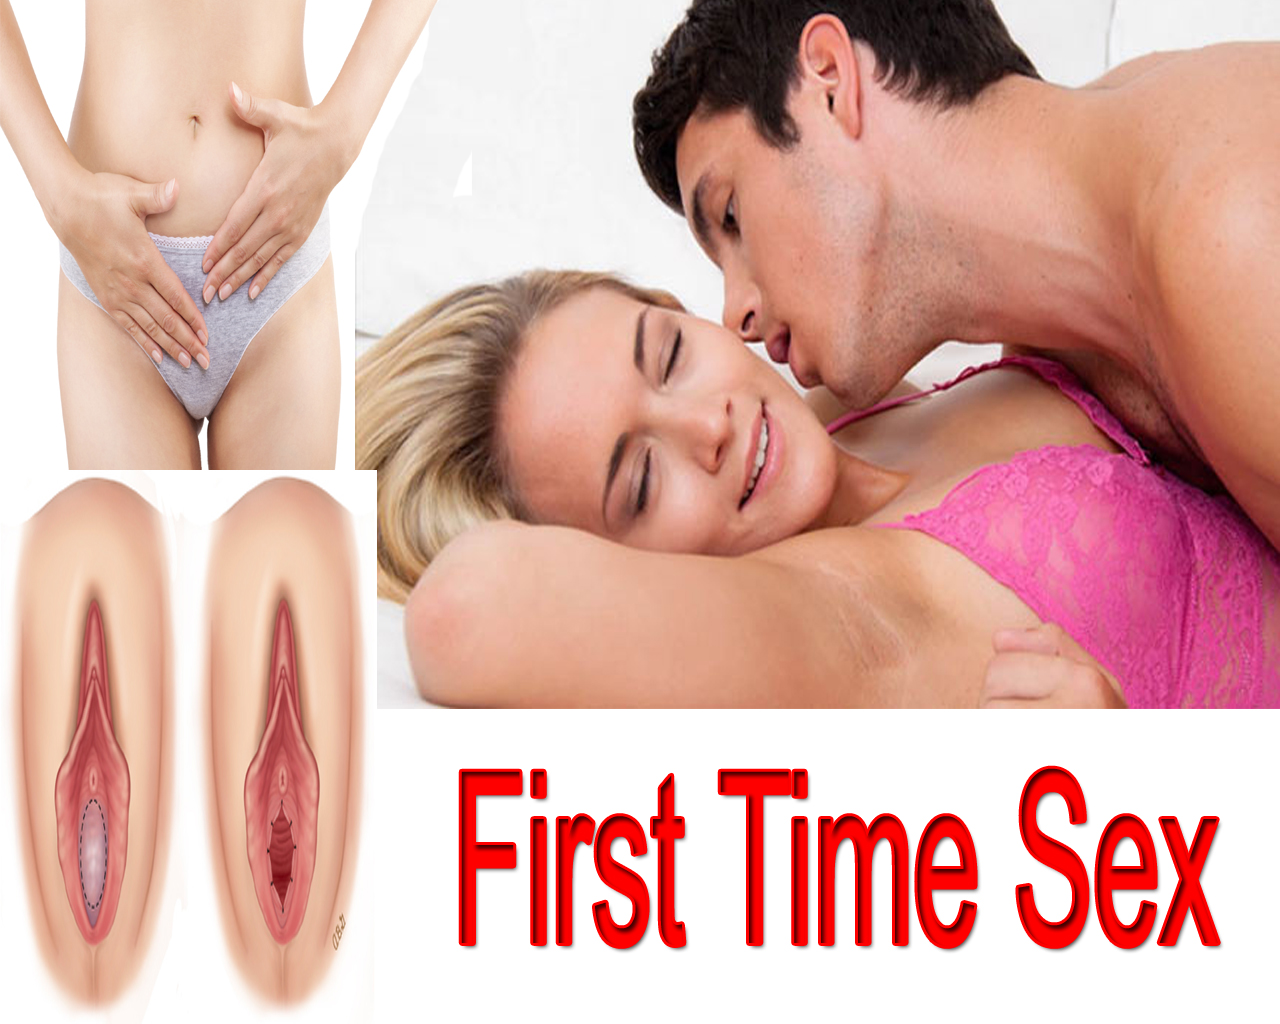 Prepare for first time sex